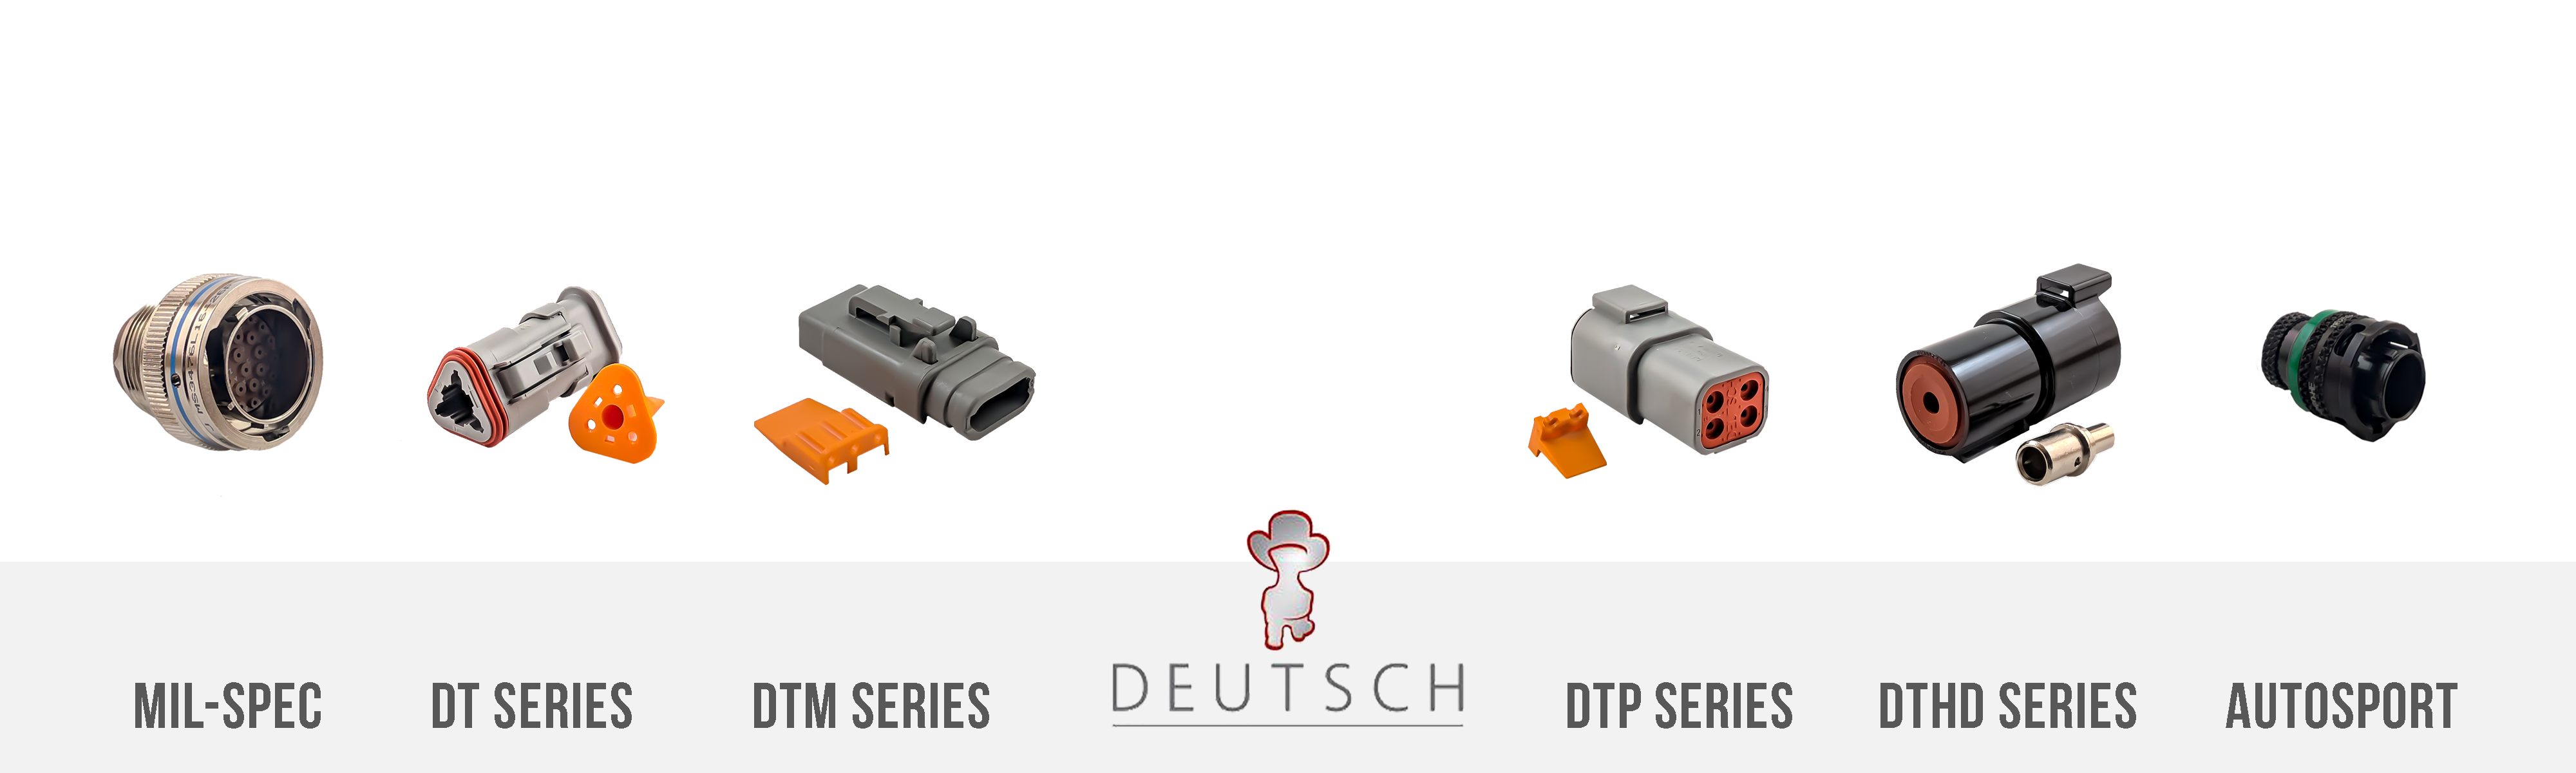 Deutsch Connectors Common Contact System